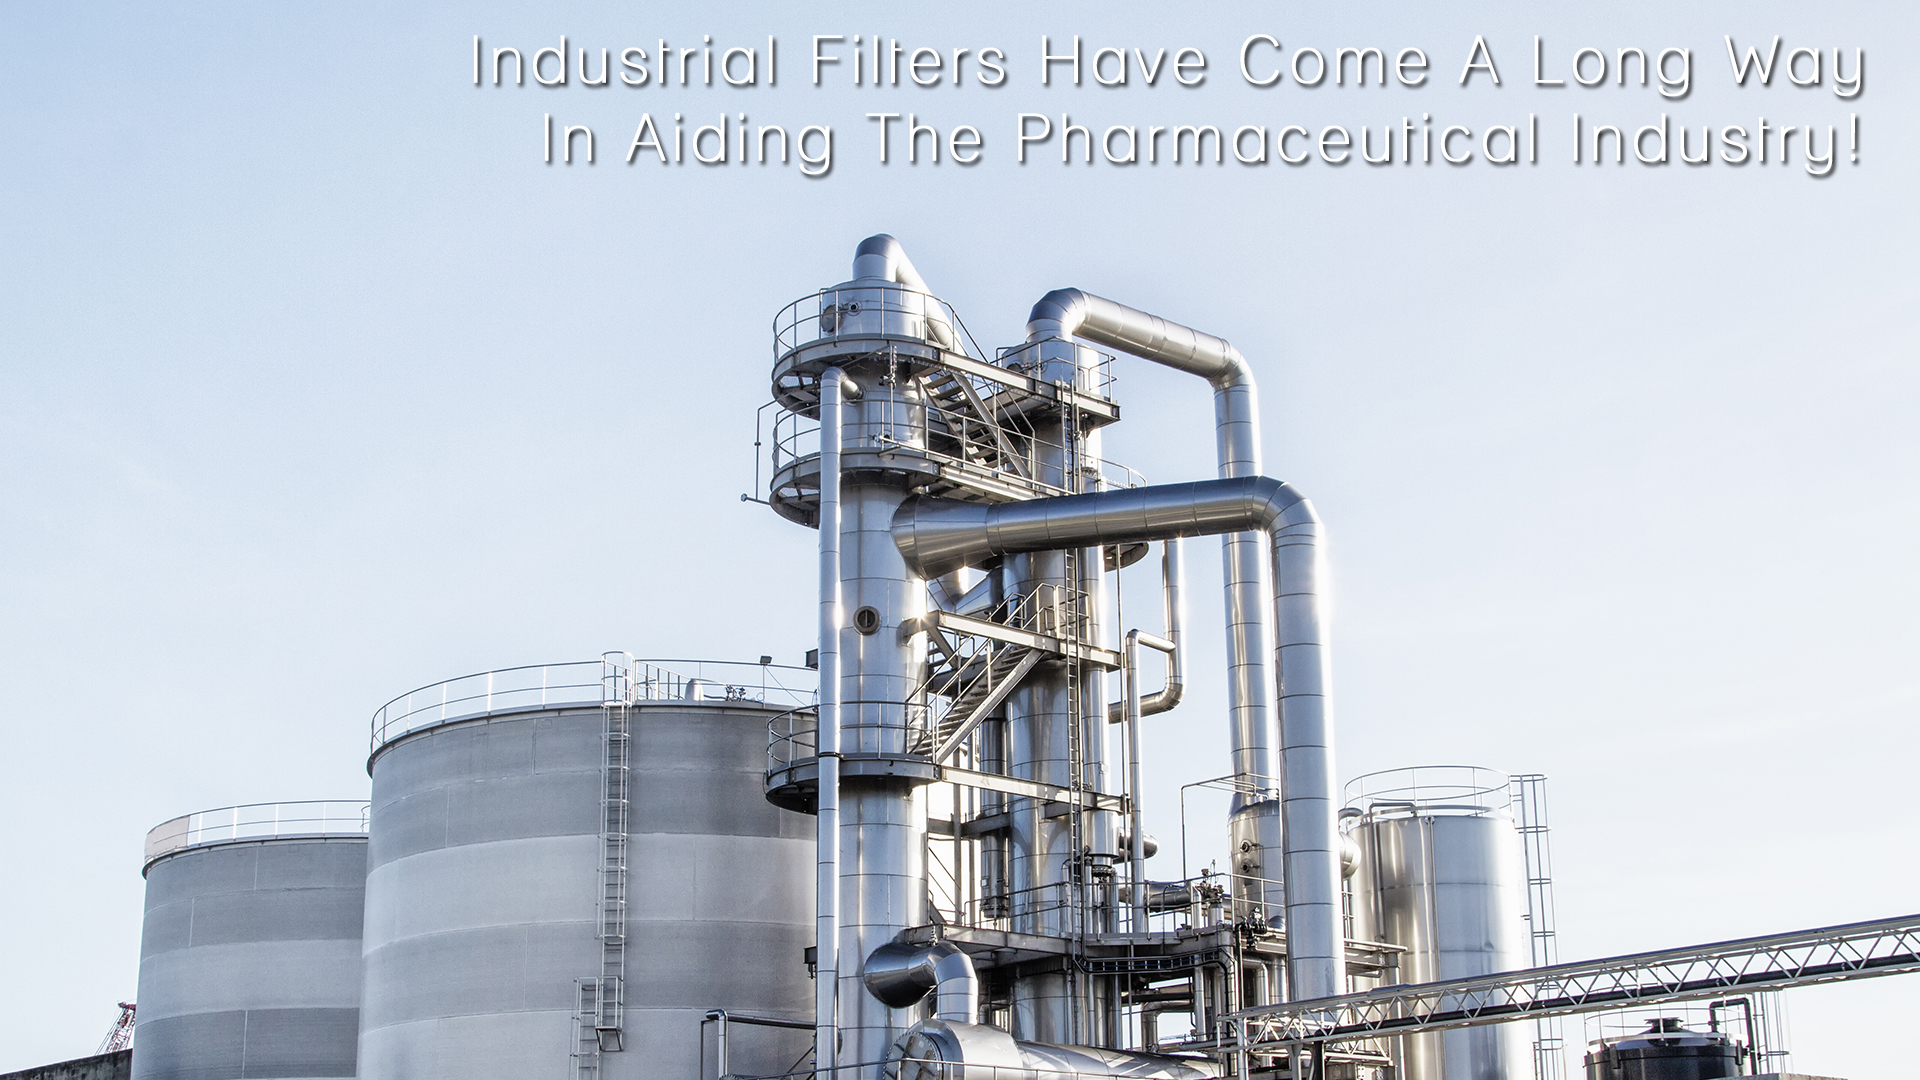 Industrial Filters Have Come A Long Way In Aiding The Pharmaceutical Industry